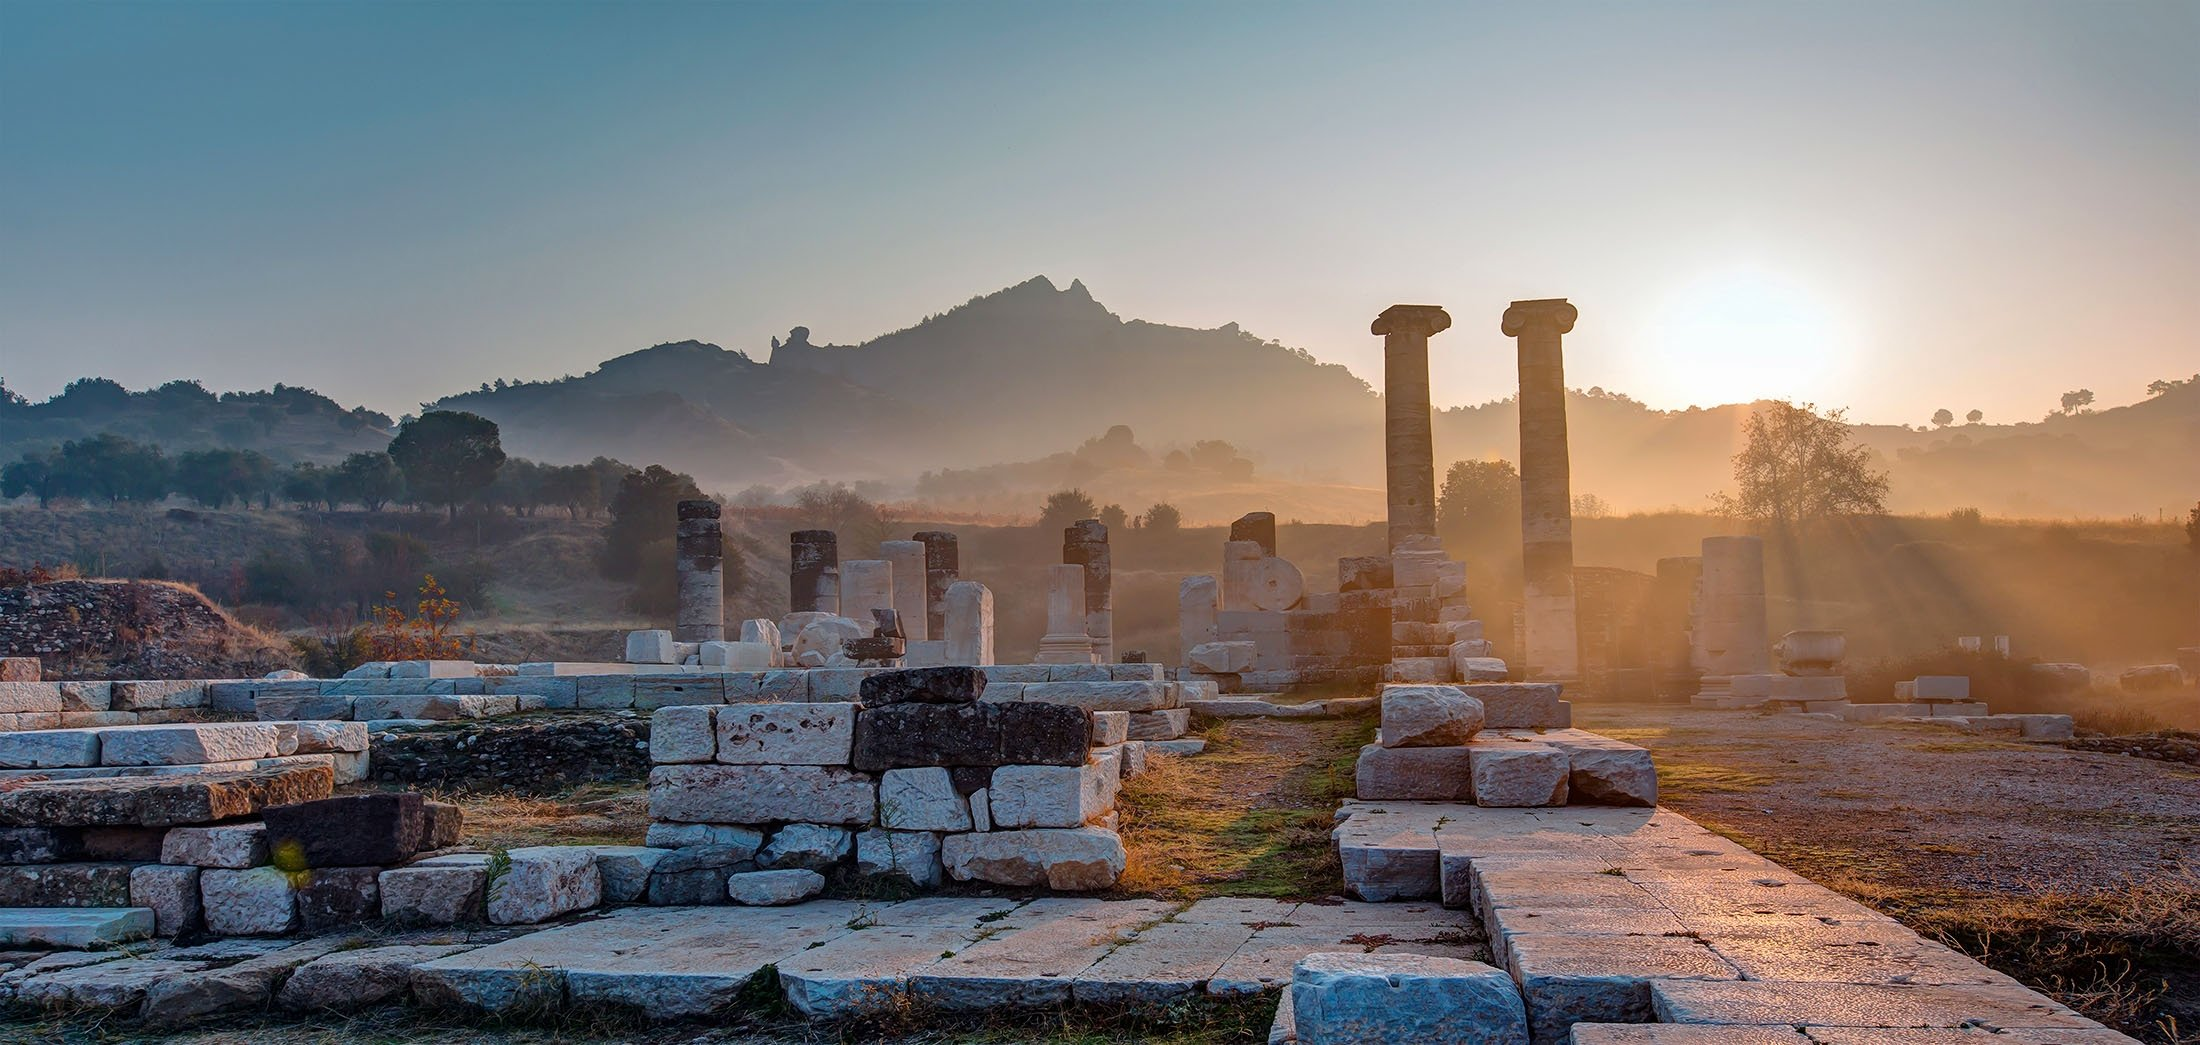 The Temple of Artemis in the ancient city of Sardis, Manisa. (Shutterstock Photo)